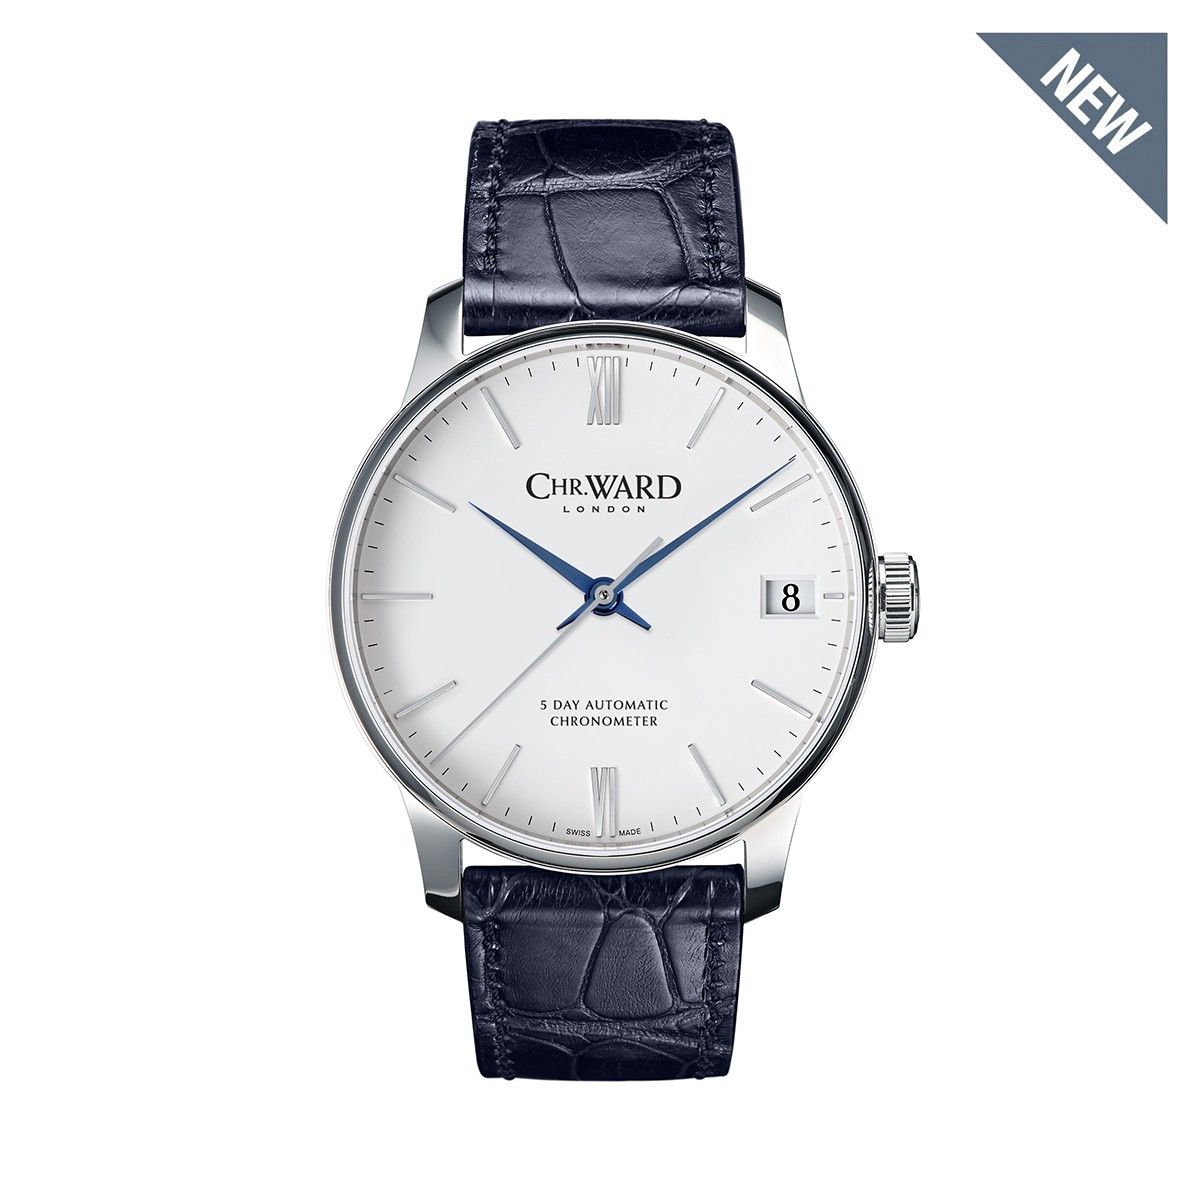 C9 5 Day Automatic Watch, White Dial on Blue Strap - Chr. Ward